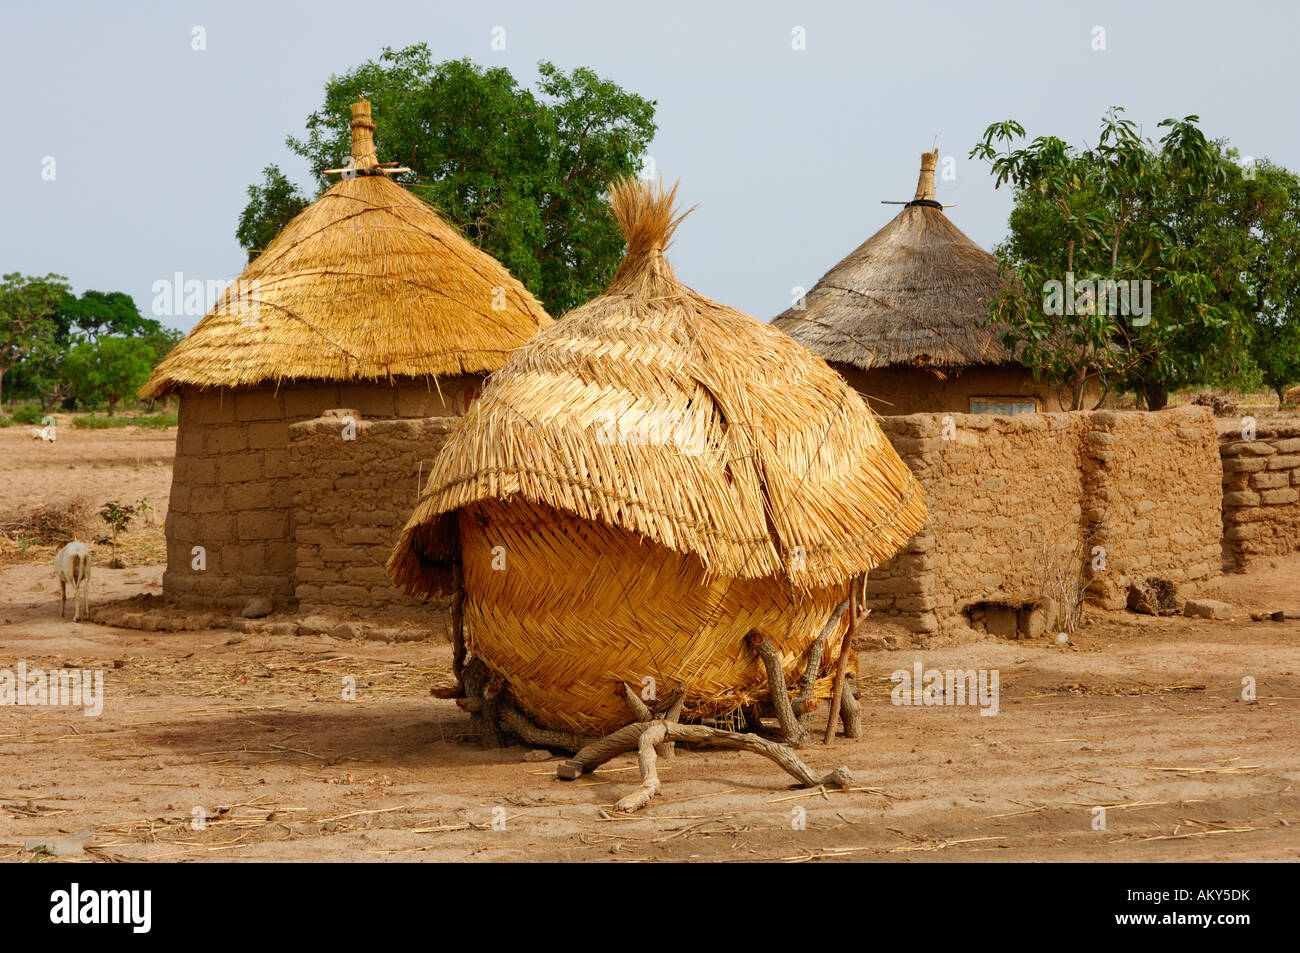 African homestead with granary burkina faso stock photo for Free homestead